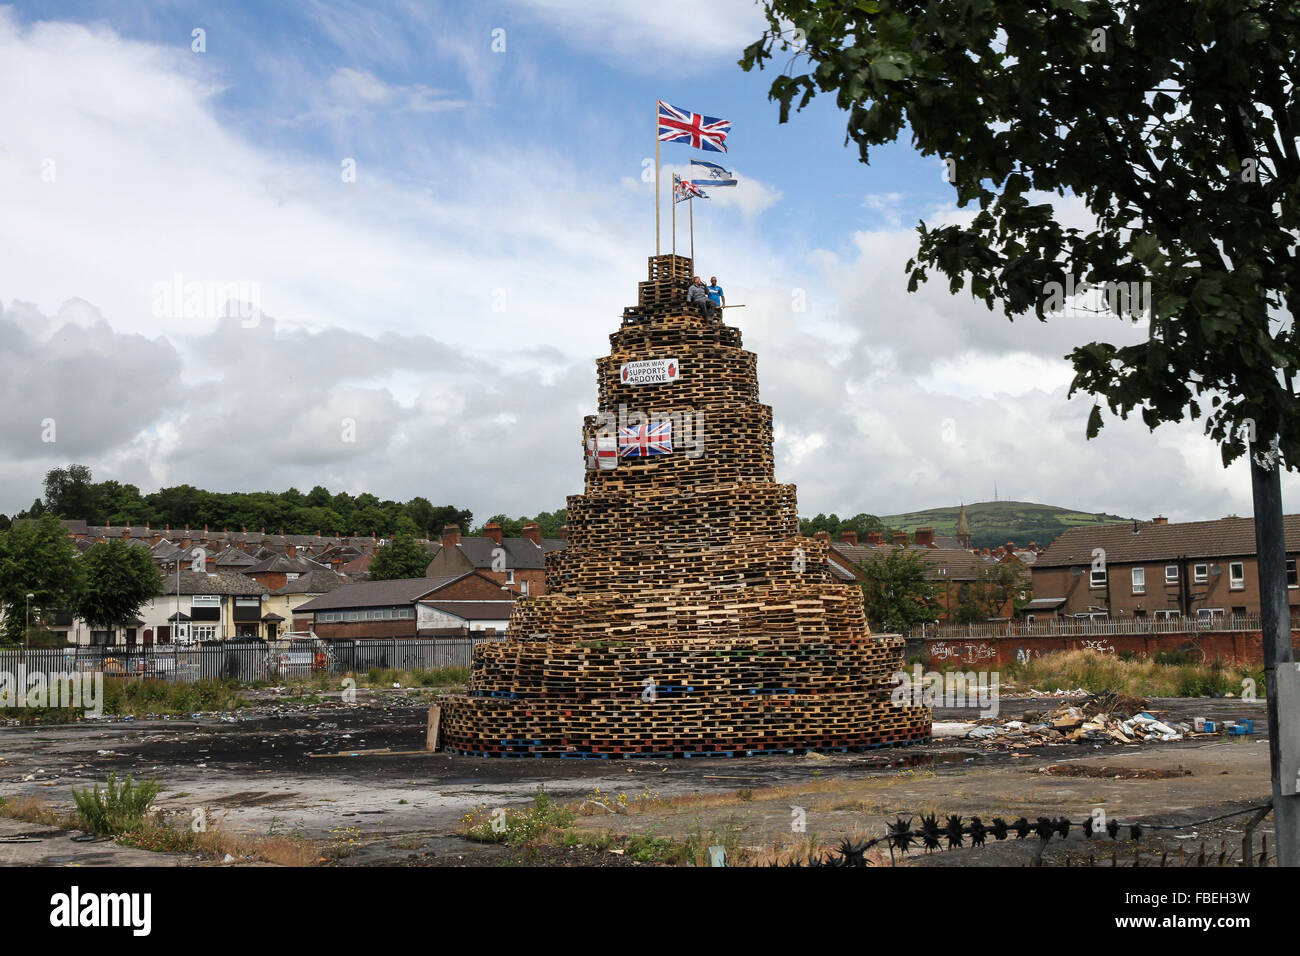 Bonfire. Flags flying on a loyalist bonfire in Belfast, Northern Ireland. This bonfire is made from wooden pallets, - Stock Image